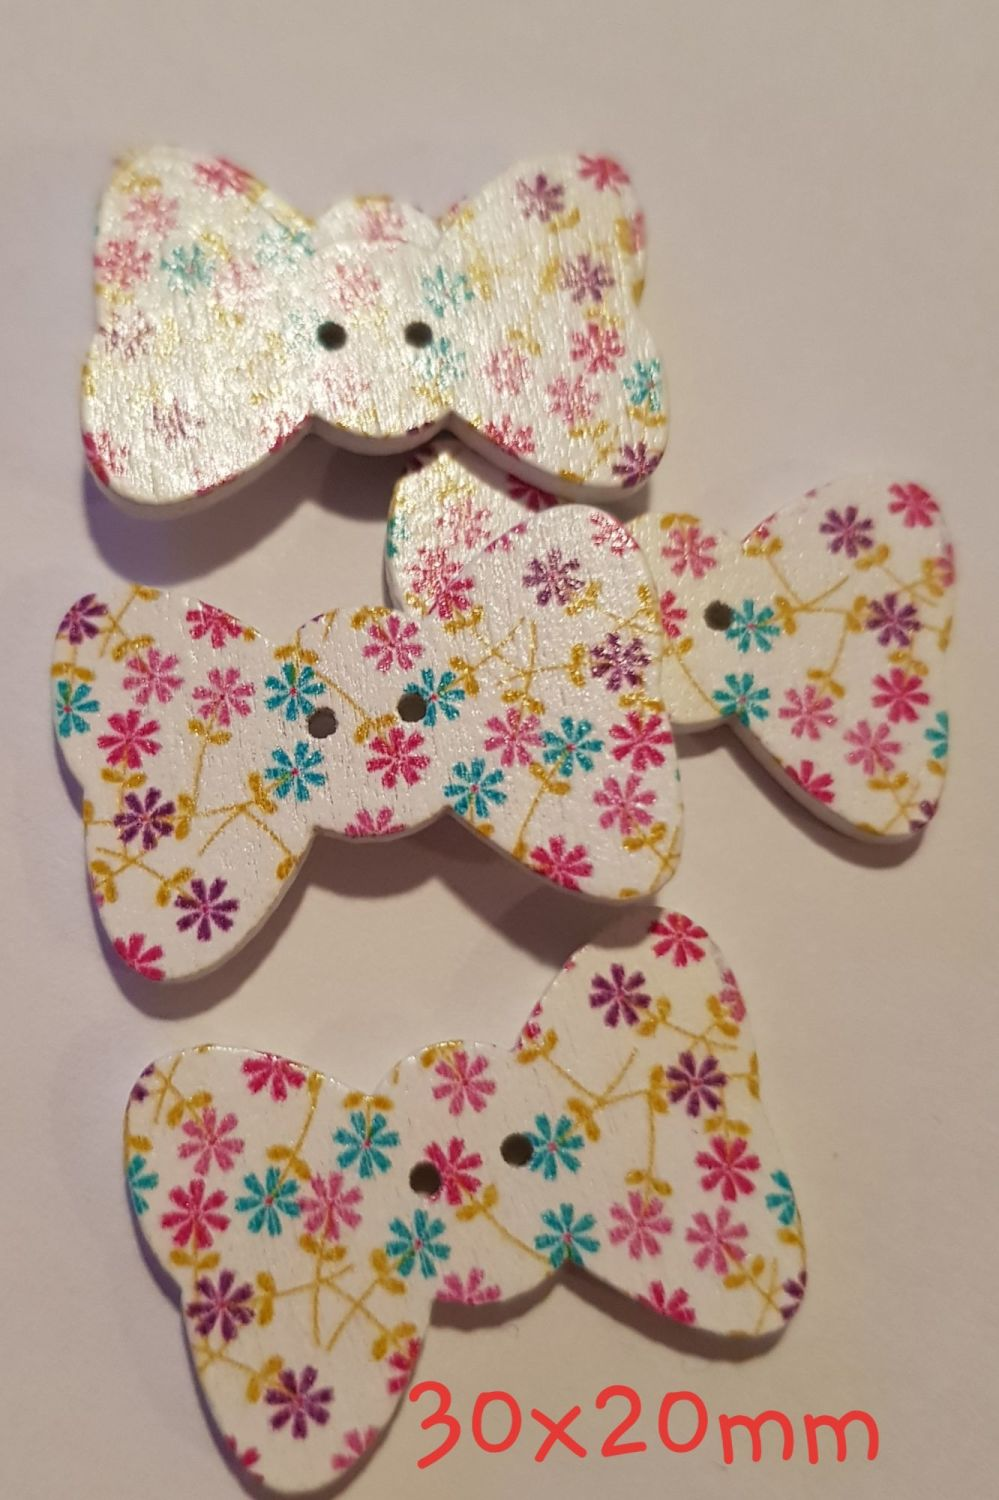 White with Flowers Bow Shaped Button 30mmx20mm (Pack of 6)